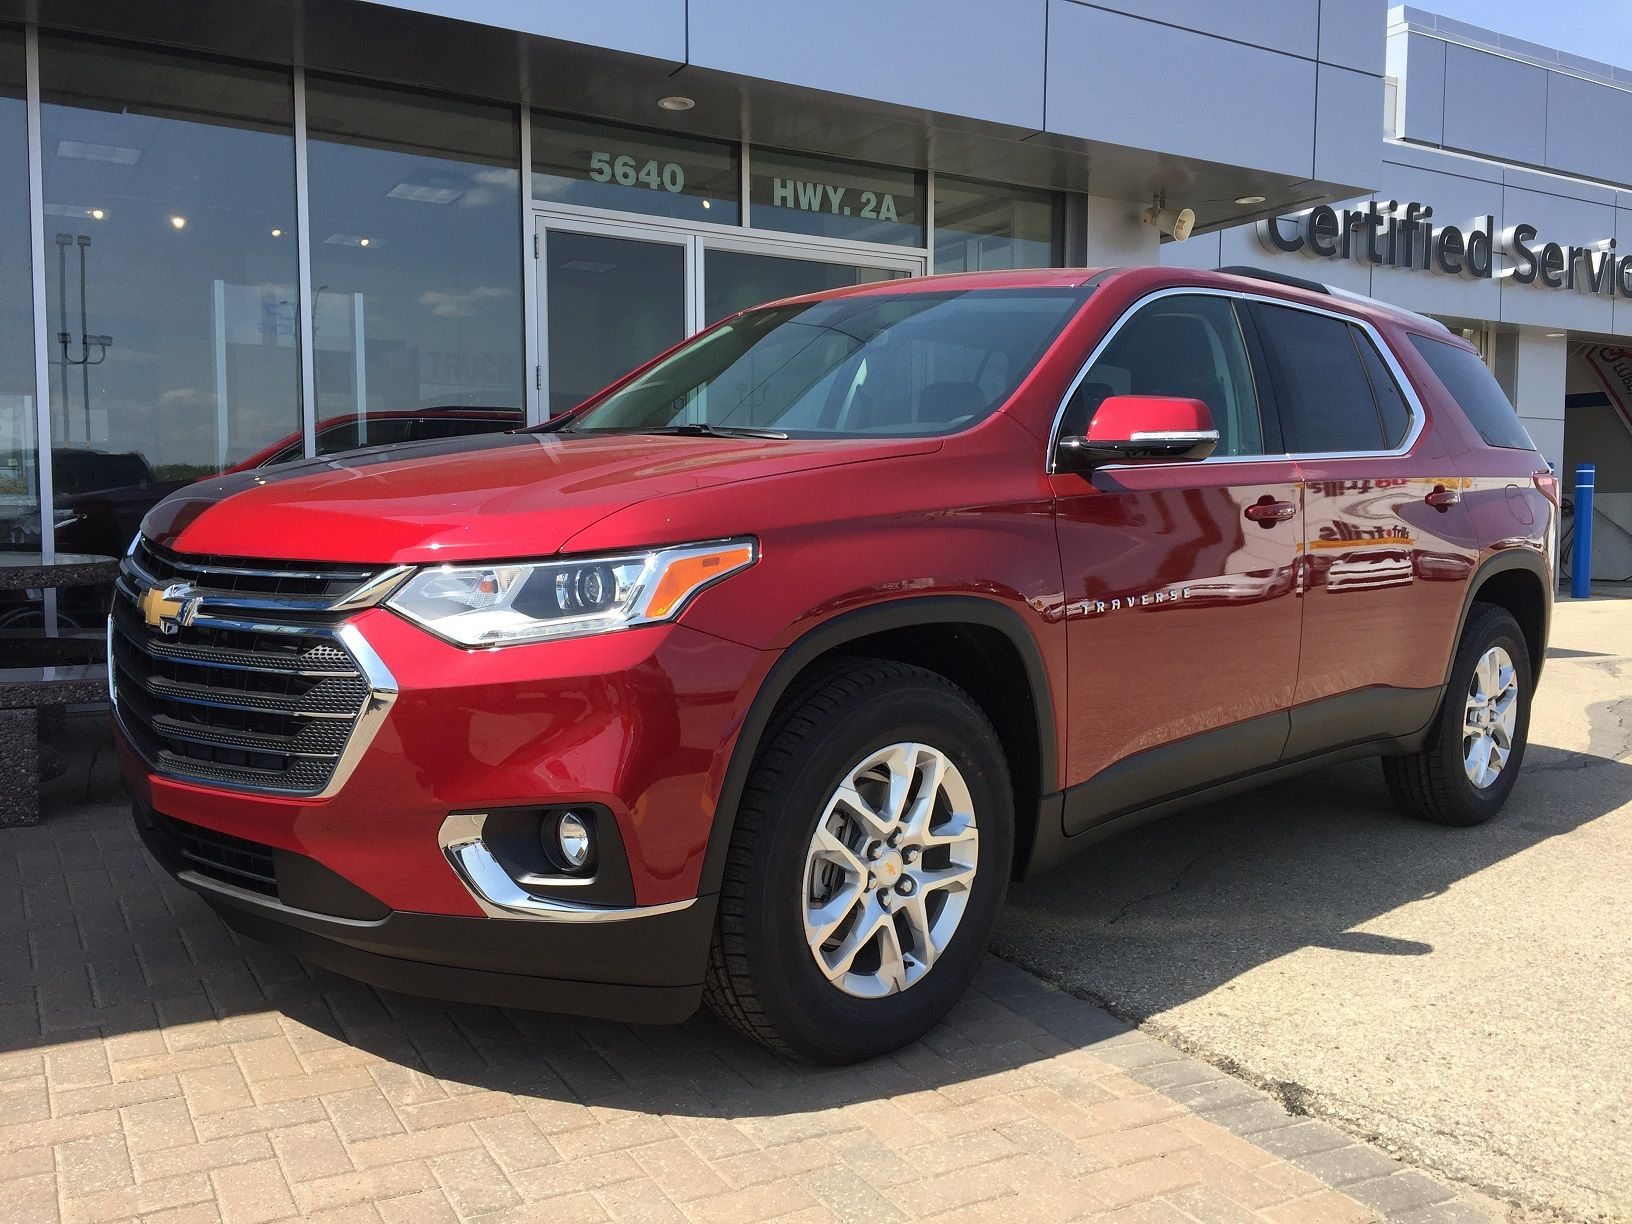 2018 Chevrolet Traverse Red Awd 7 Seater Chevrolet Traverse Chevrolet Awd